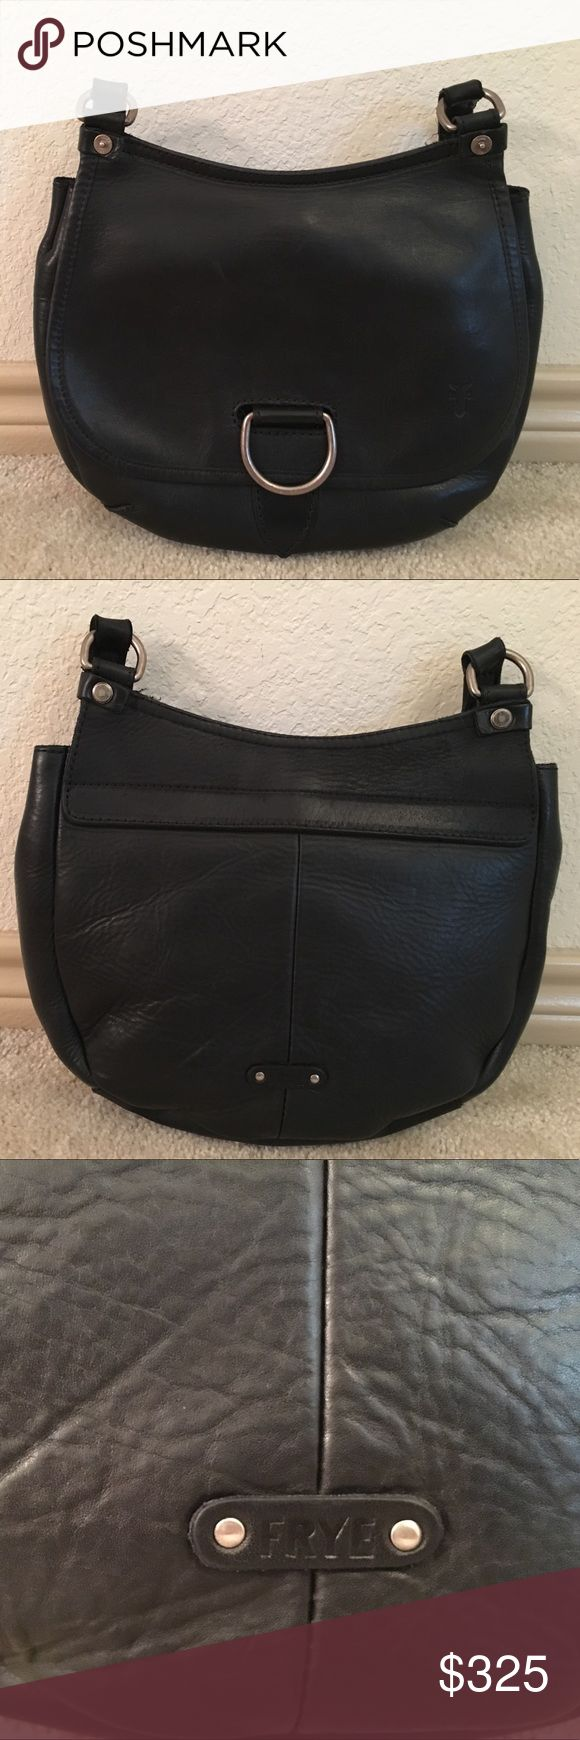 Frye 'Amy' Crossbody Bag NEW! Excellent condition. Black, rugged leather. Antique nickel hardware. Adjustable crossbody strap. Exterior: D-ring closure with outside zip pocket. Interior: Zipper pocket, 2 slip pockets, key holder and snap closure. Includes dust bag. You will love this bag! I'm letting it go since I've been using more shoulder bags. Frye Bags Crossbody Bags